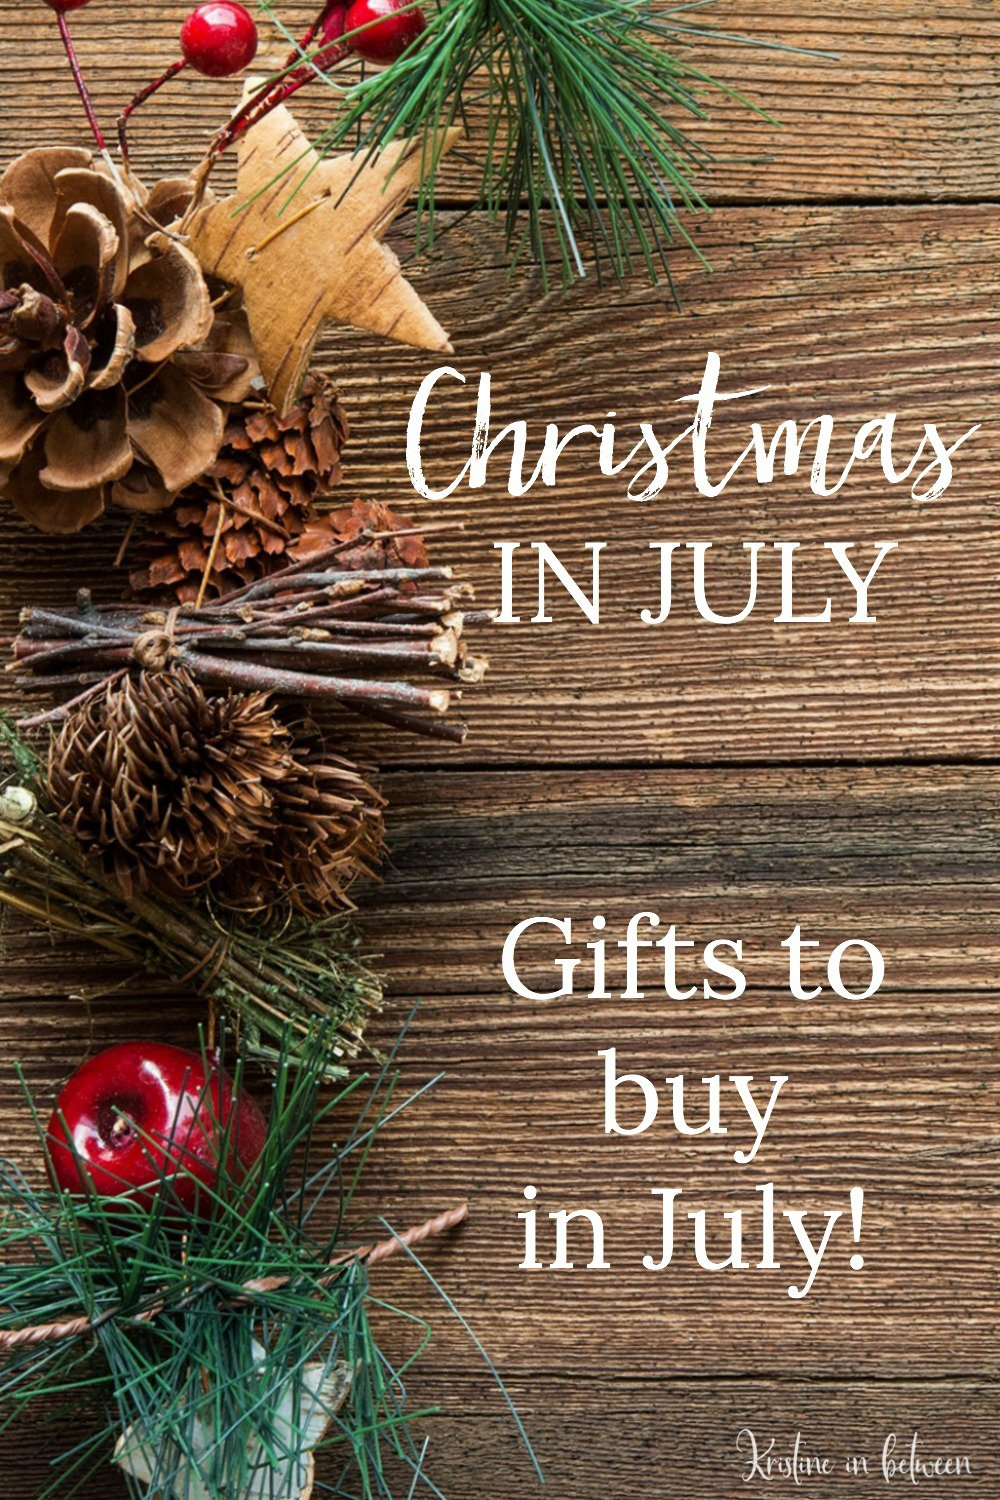 Celebrate Christmas in July with these gifts to buy in July!